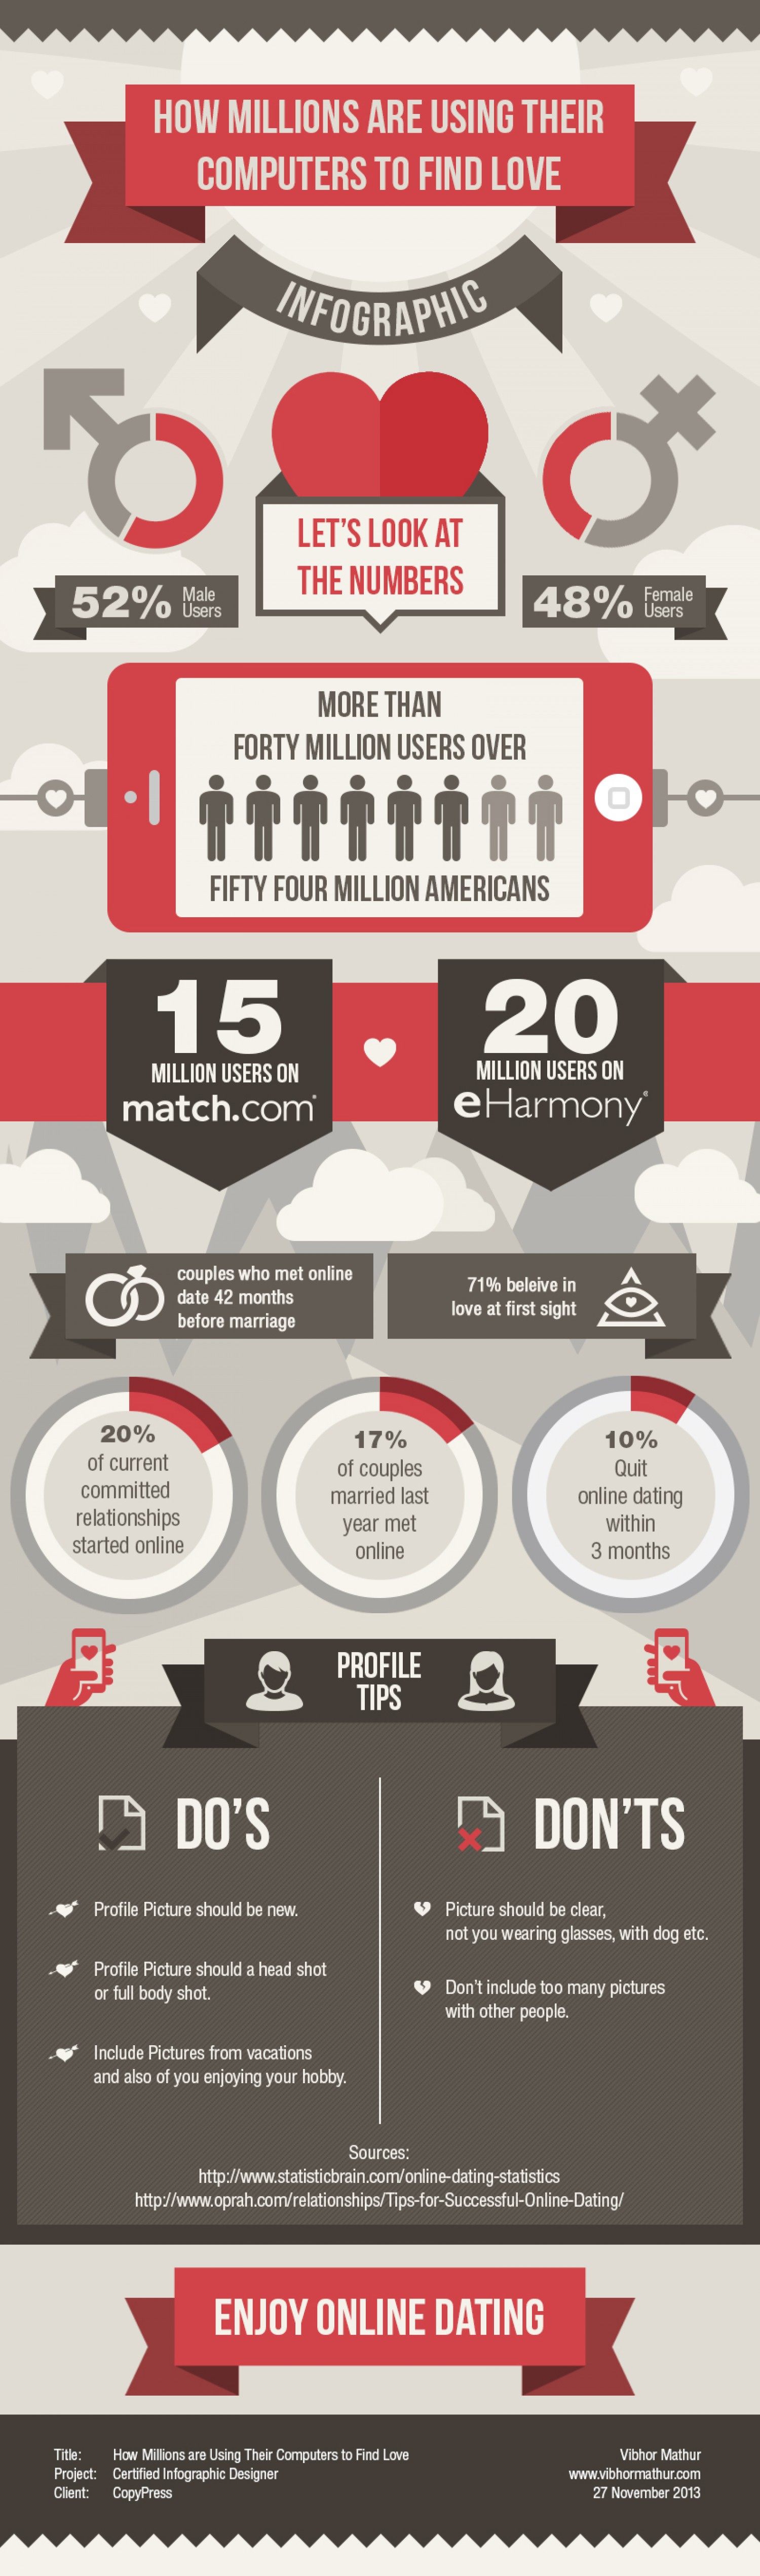 8. How millions are using their computers to find love